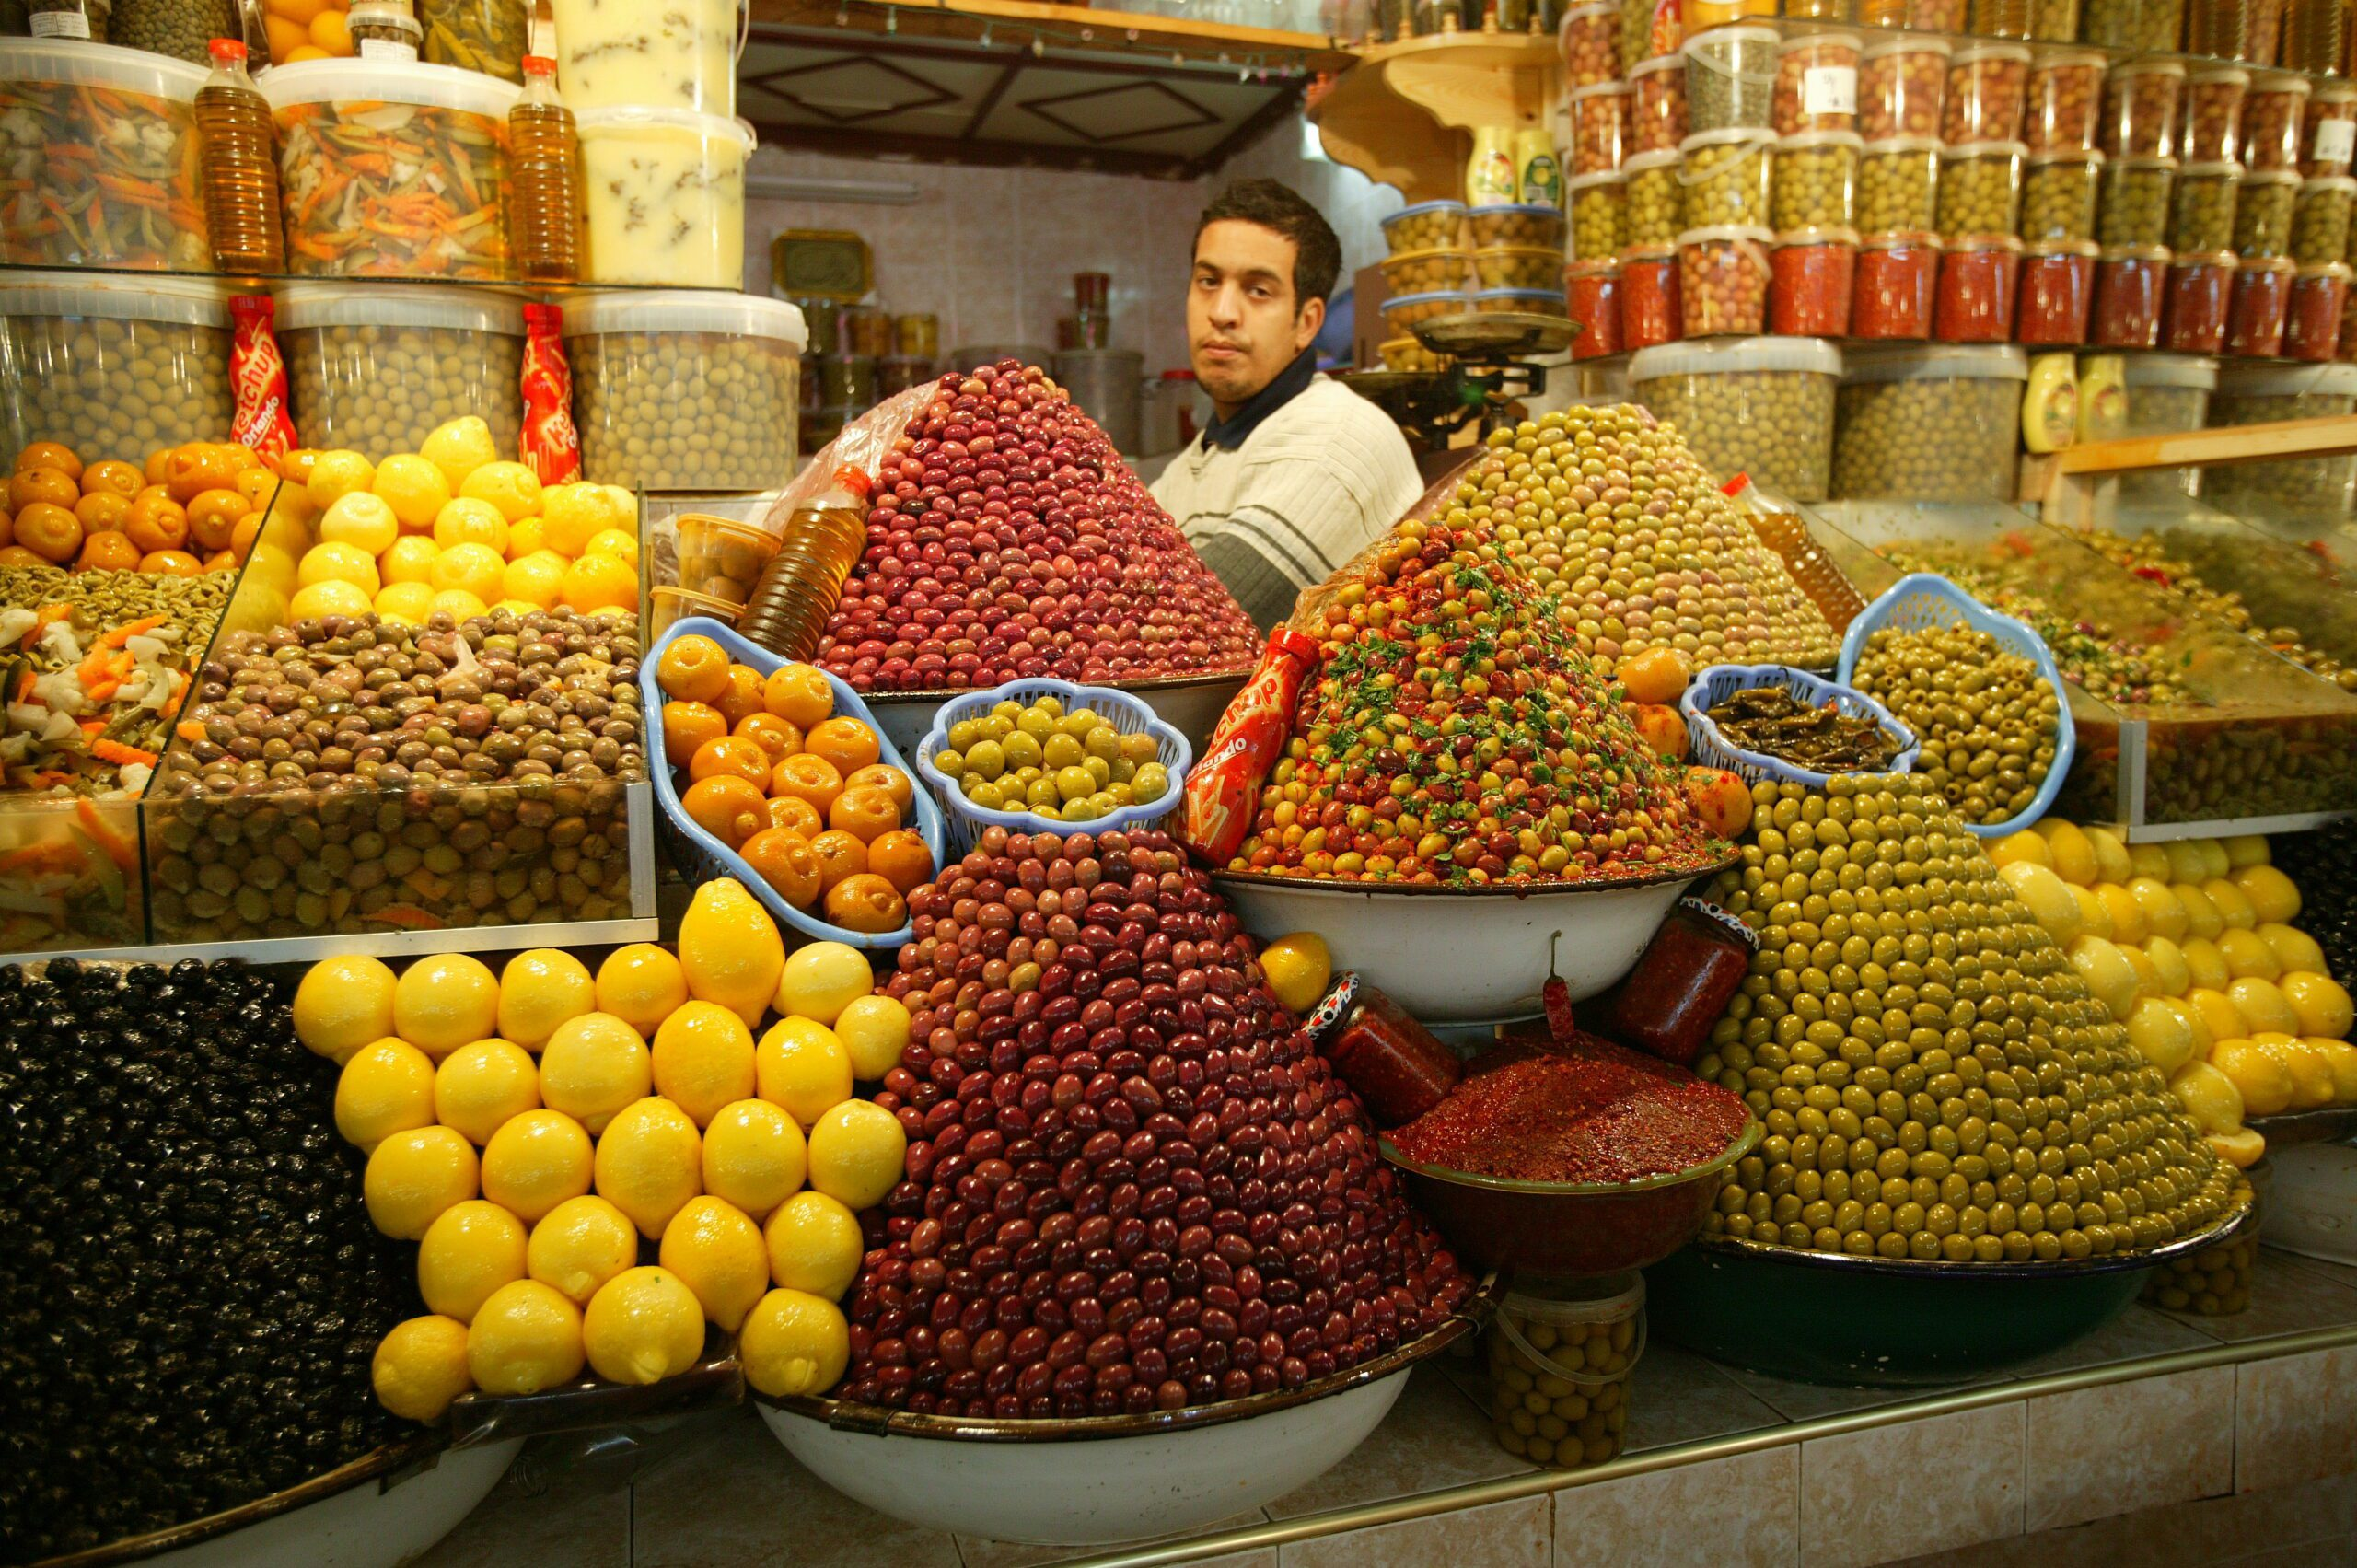 Visit Morocco to see olives piled high at a souk in Marrakech